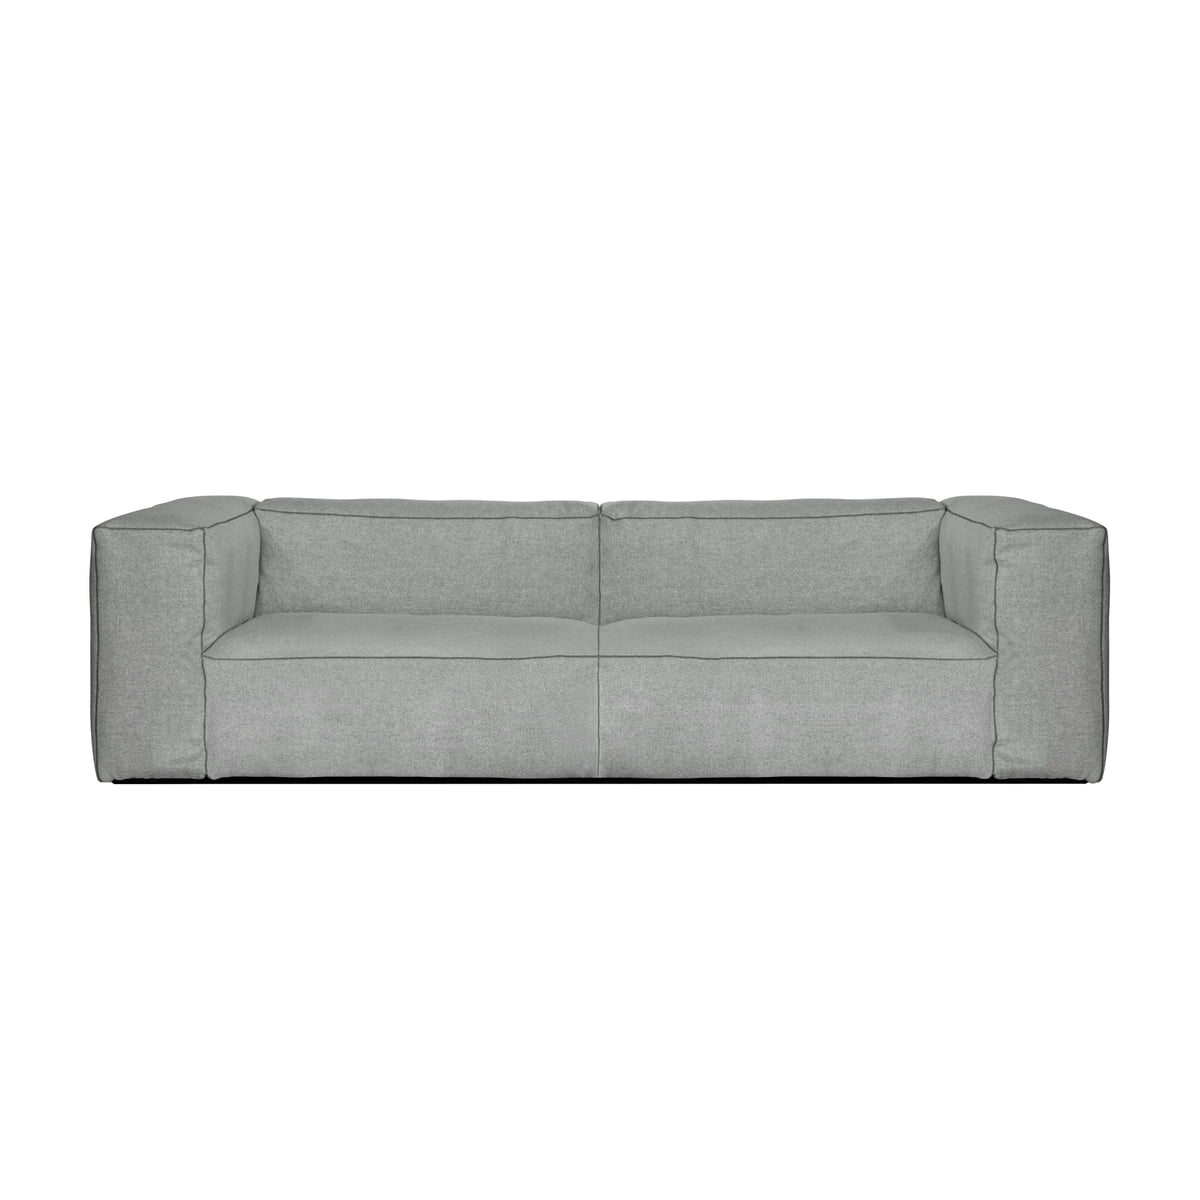 Mags soft sofa 2 5 seater by hay in the shop for Sofa 2 sitzer